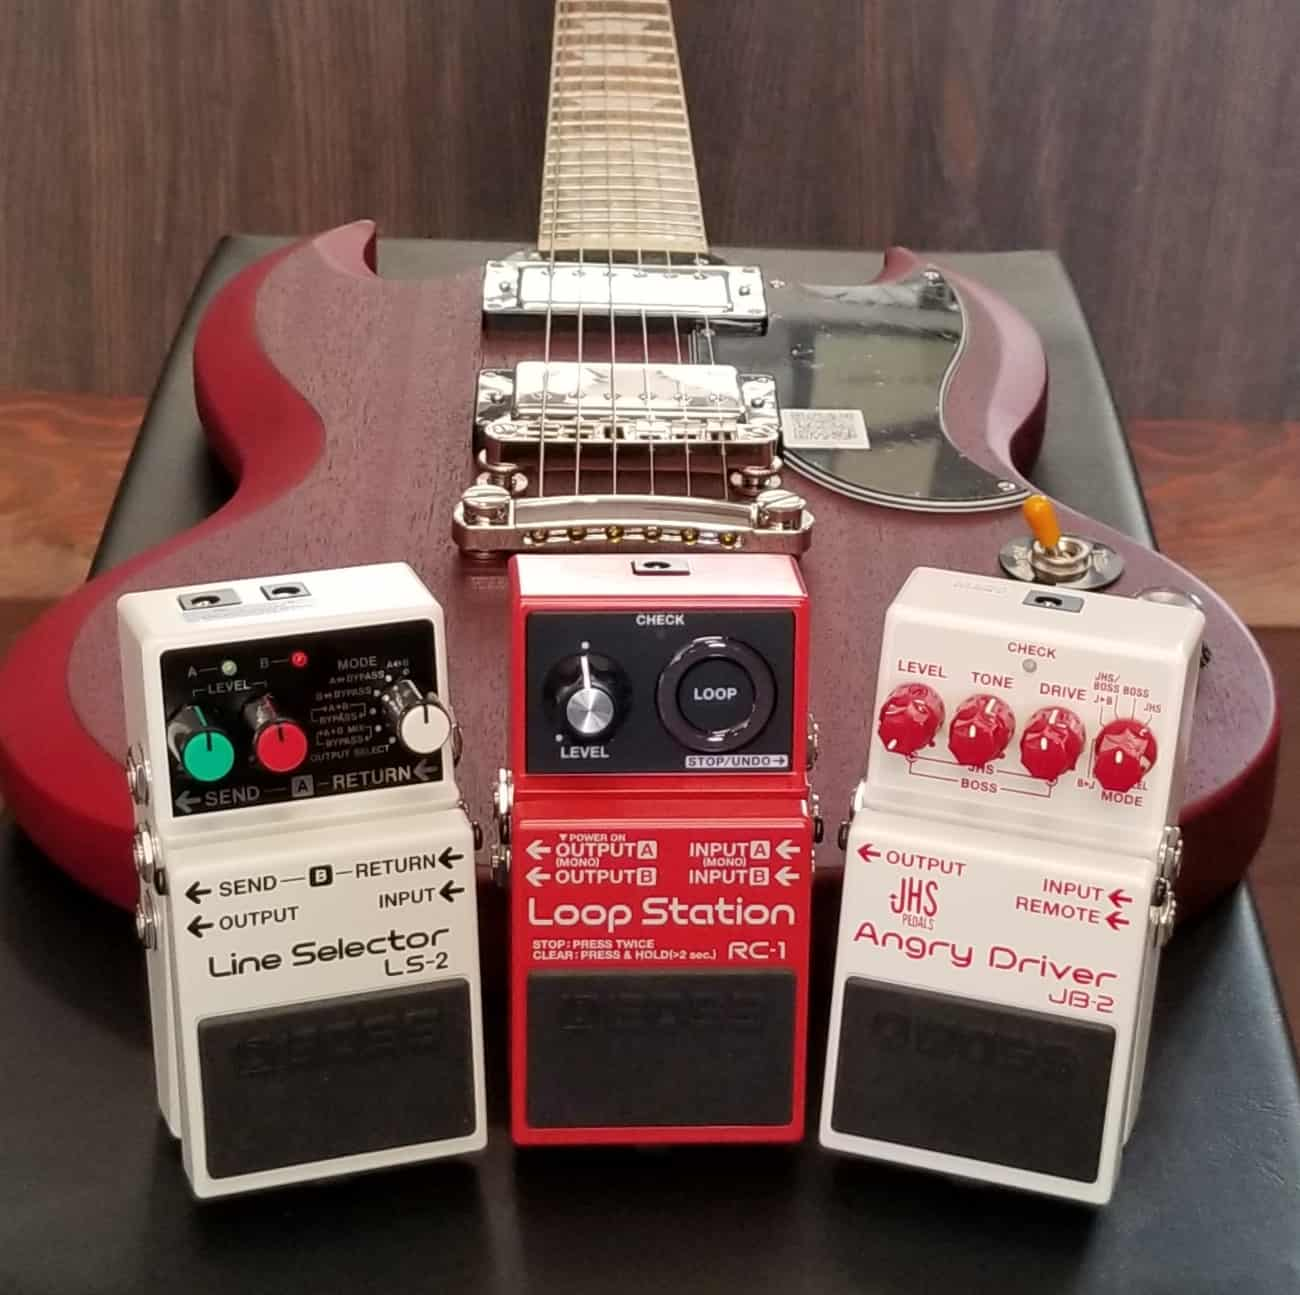 BOSS Effects Pedals Line Selector, Loop Station, Angry Driver